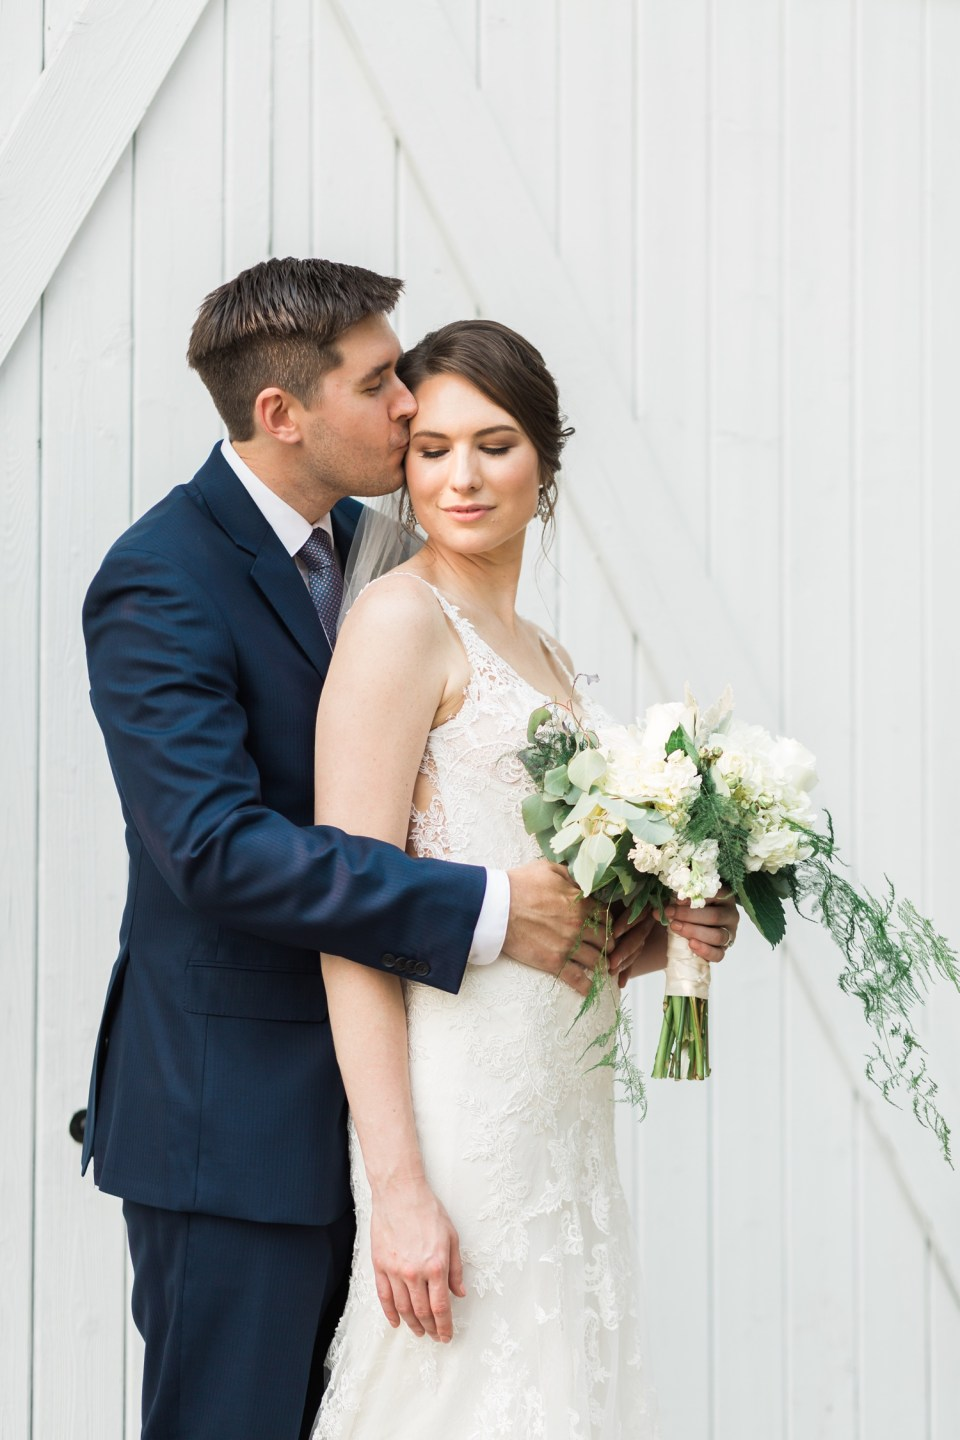 A groom kisses his bride in front of a white barn before their wedding at Chateau Lill in Woodinville, a wedding venue near Seattle, WA.   Joanna Monger Photography   Seattle & Snohomish Photographer